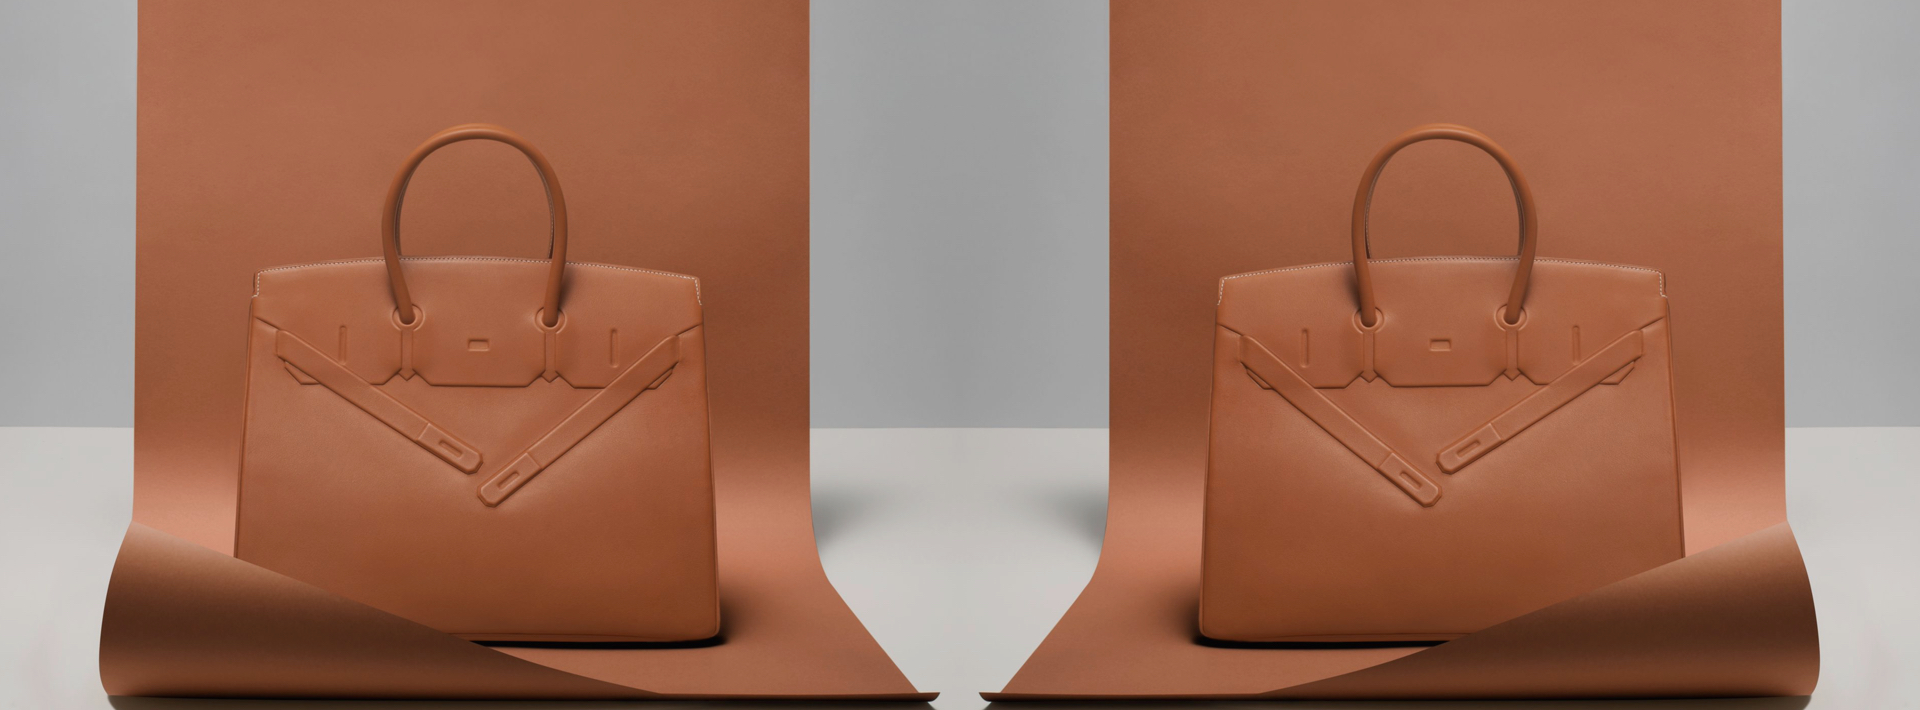 You should invest in a Hermès bag. And the resale market is the reason why.